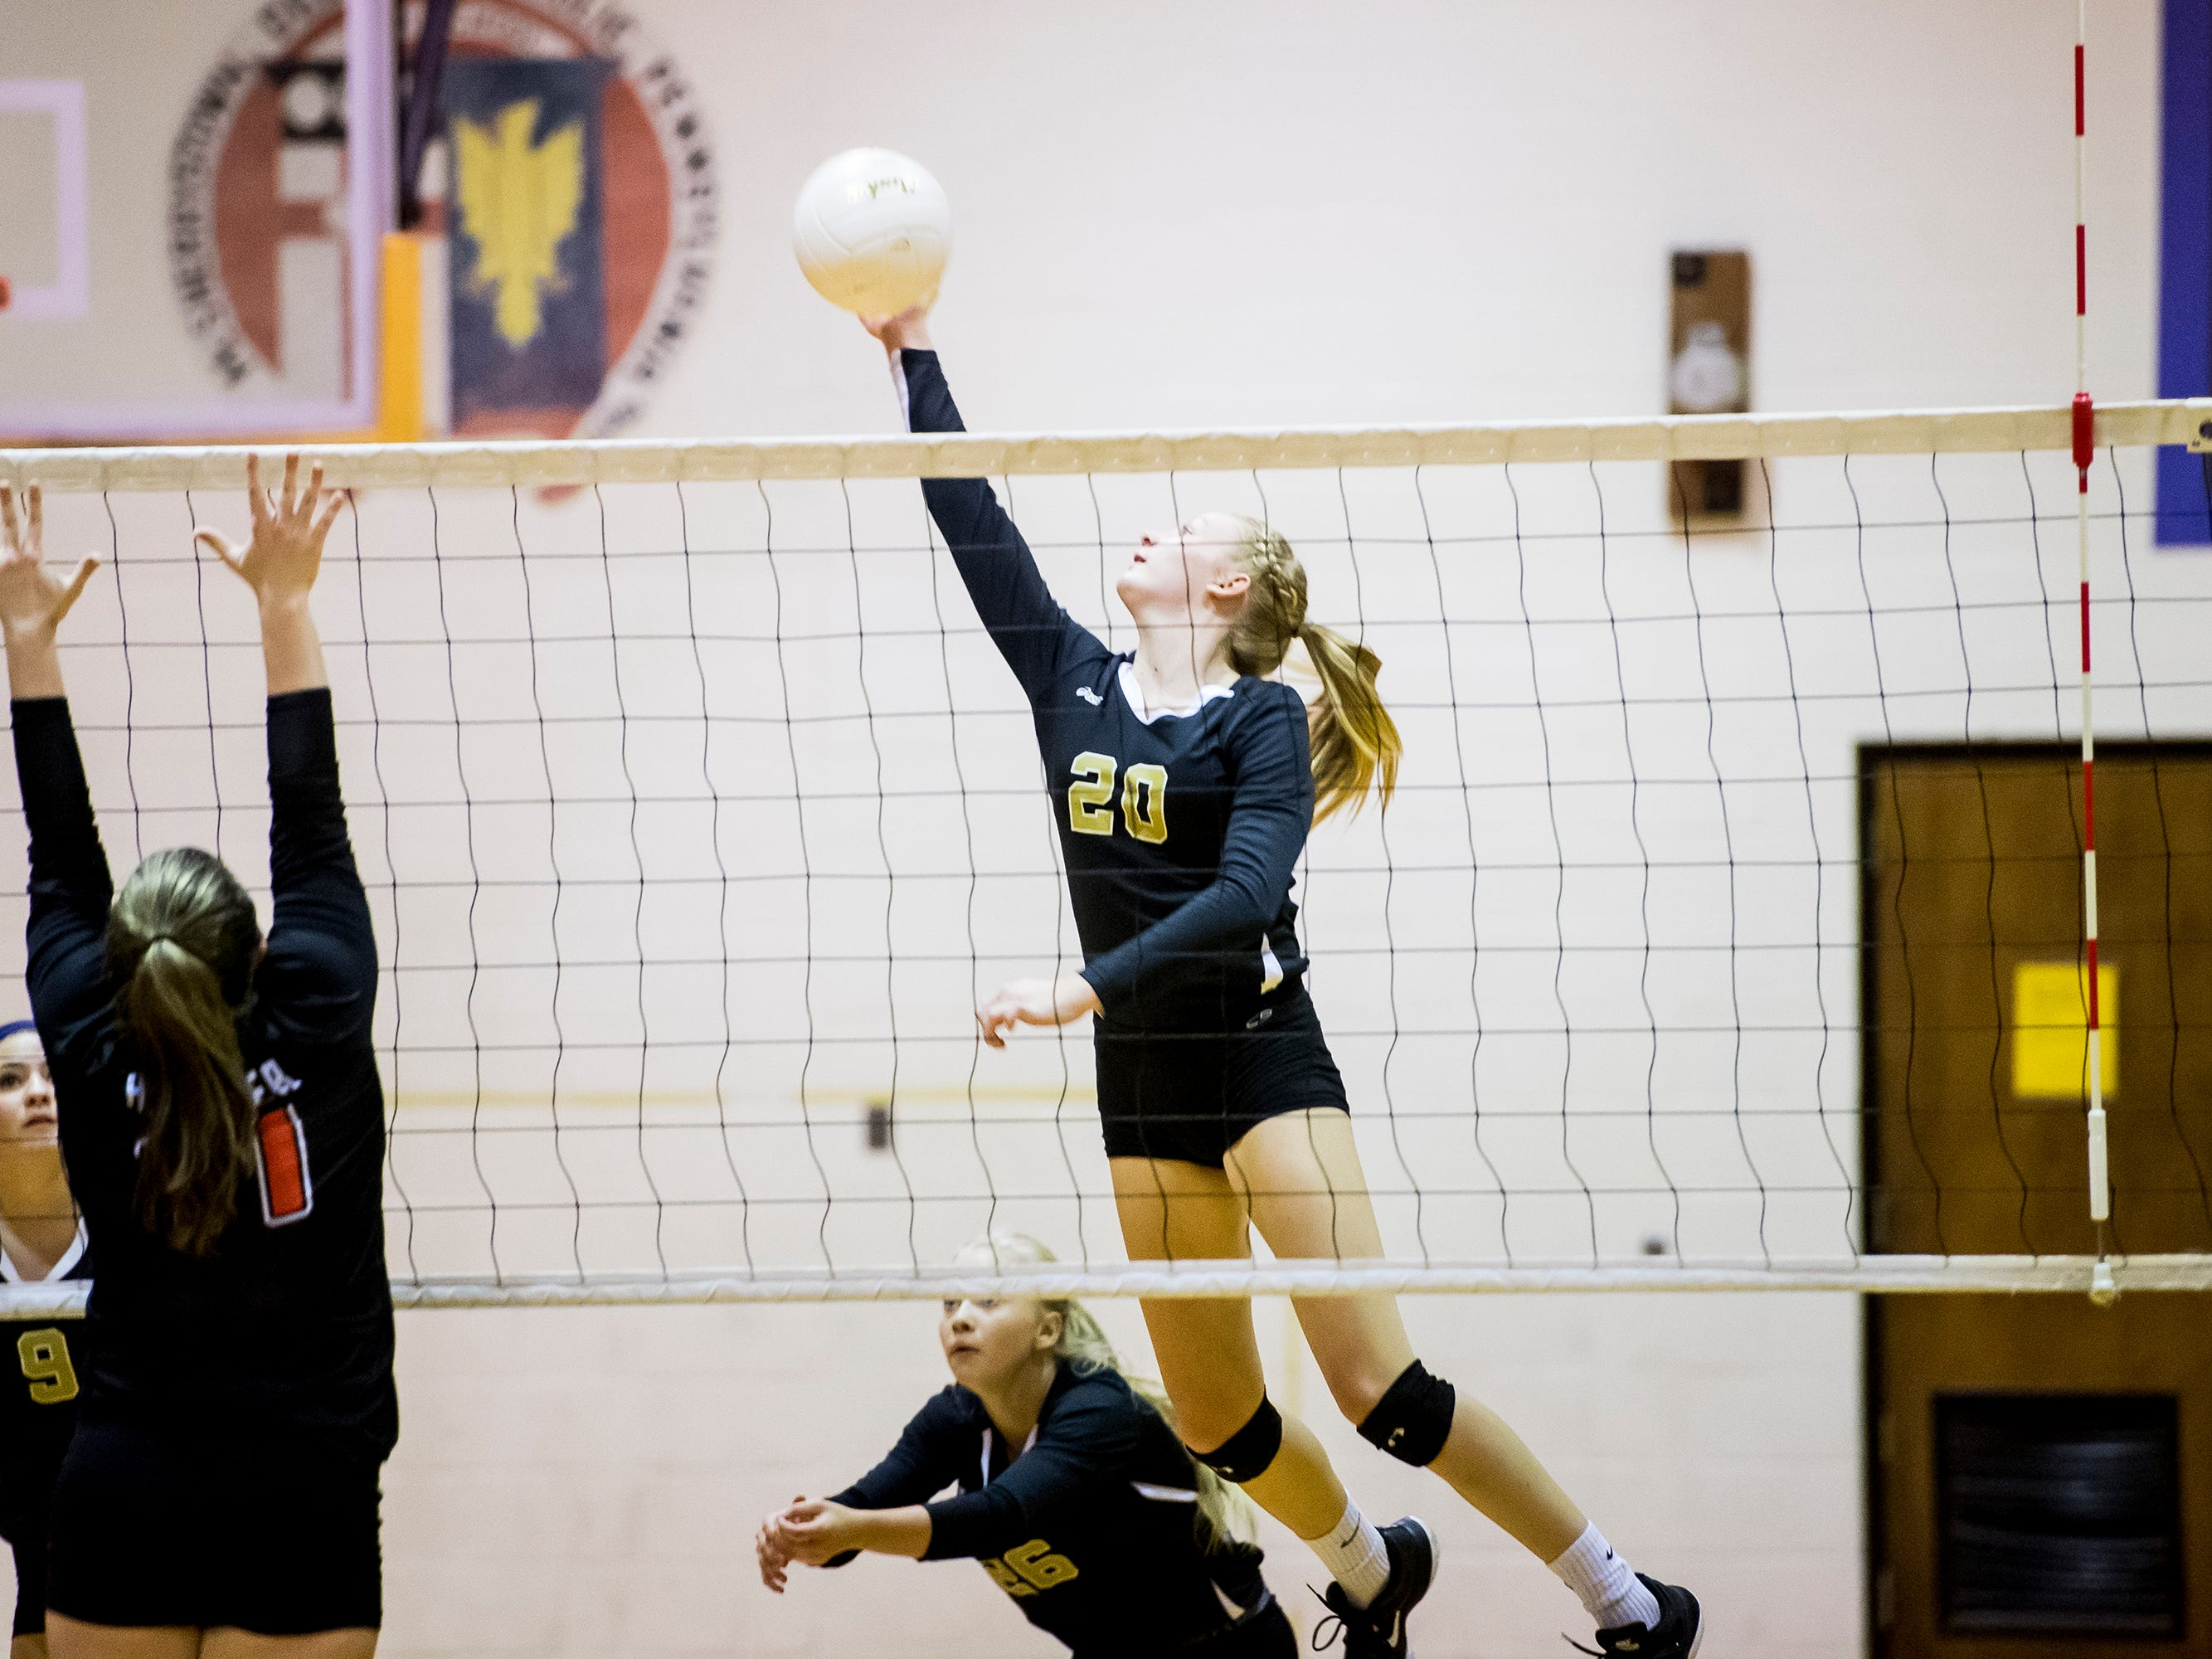 Delone Catholic's Brooke Lawyer hits the ball during play against Hanover on Tuesday, September 18, 2018. The Squirettes swept the Hawkettes 25-16, 25-19, 25-14.